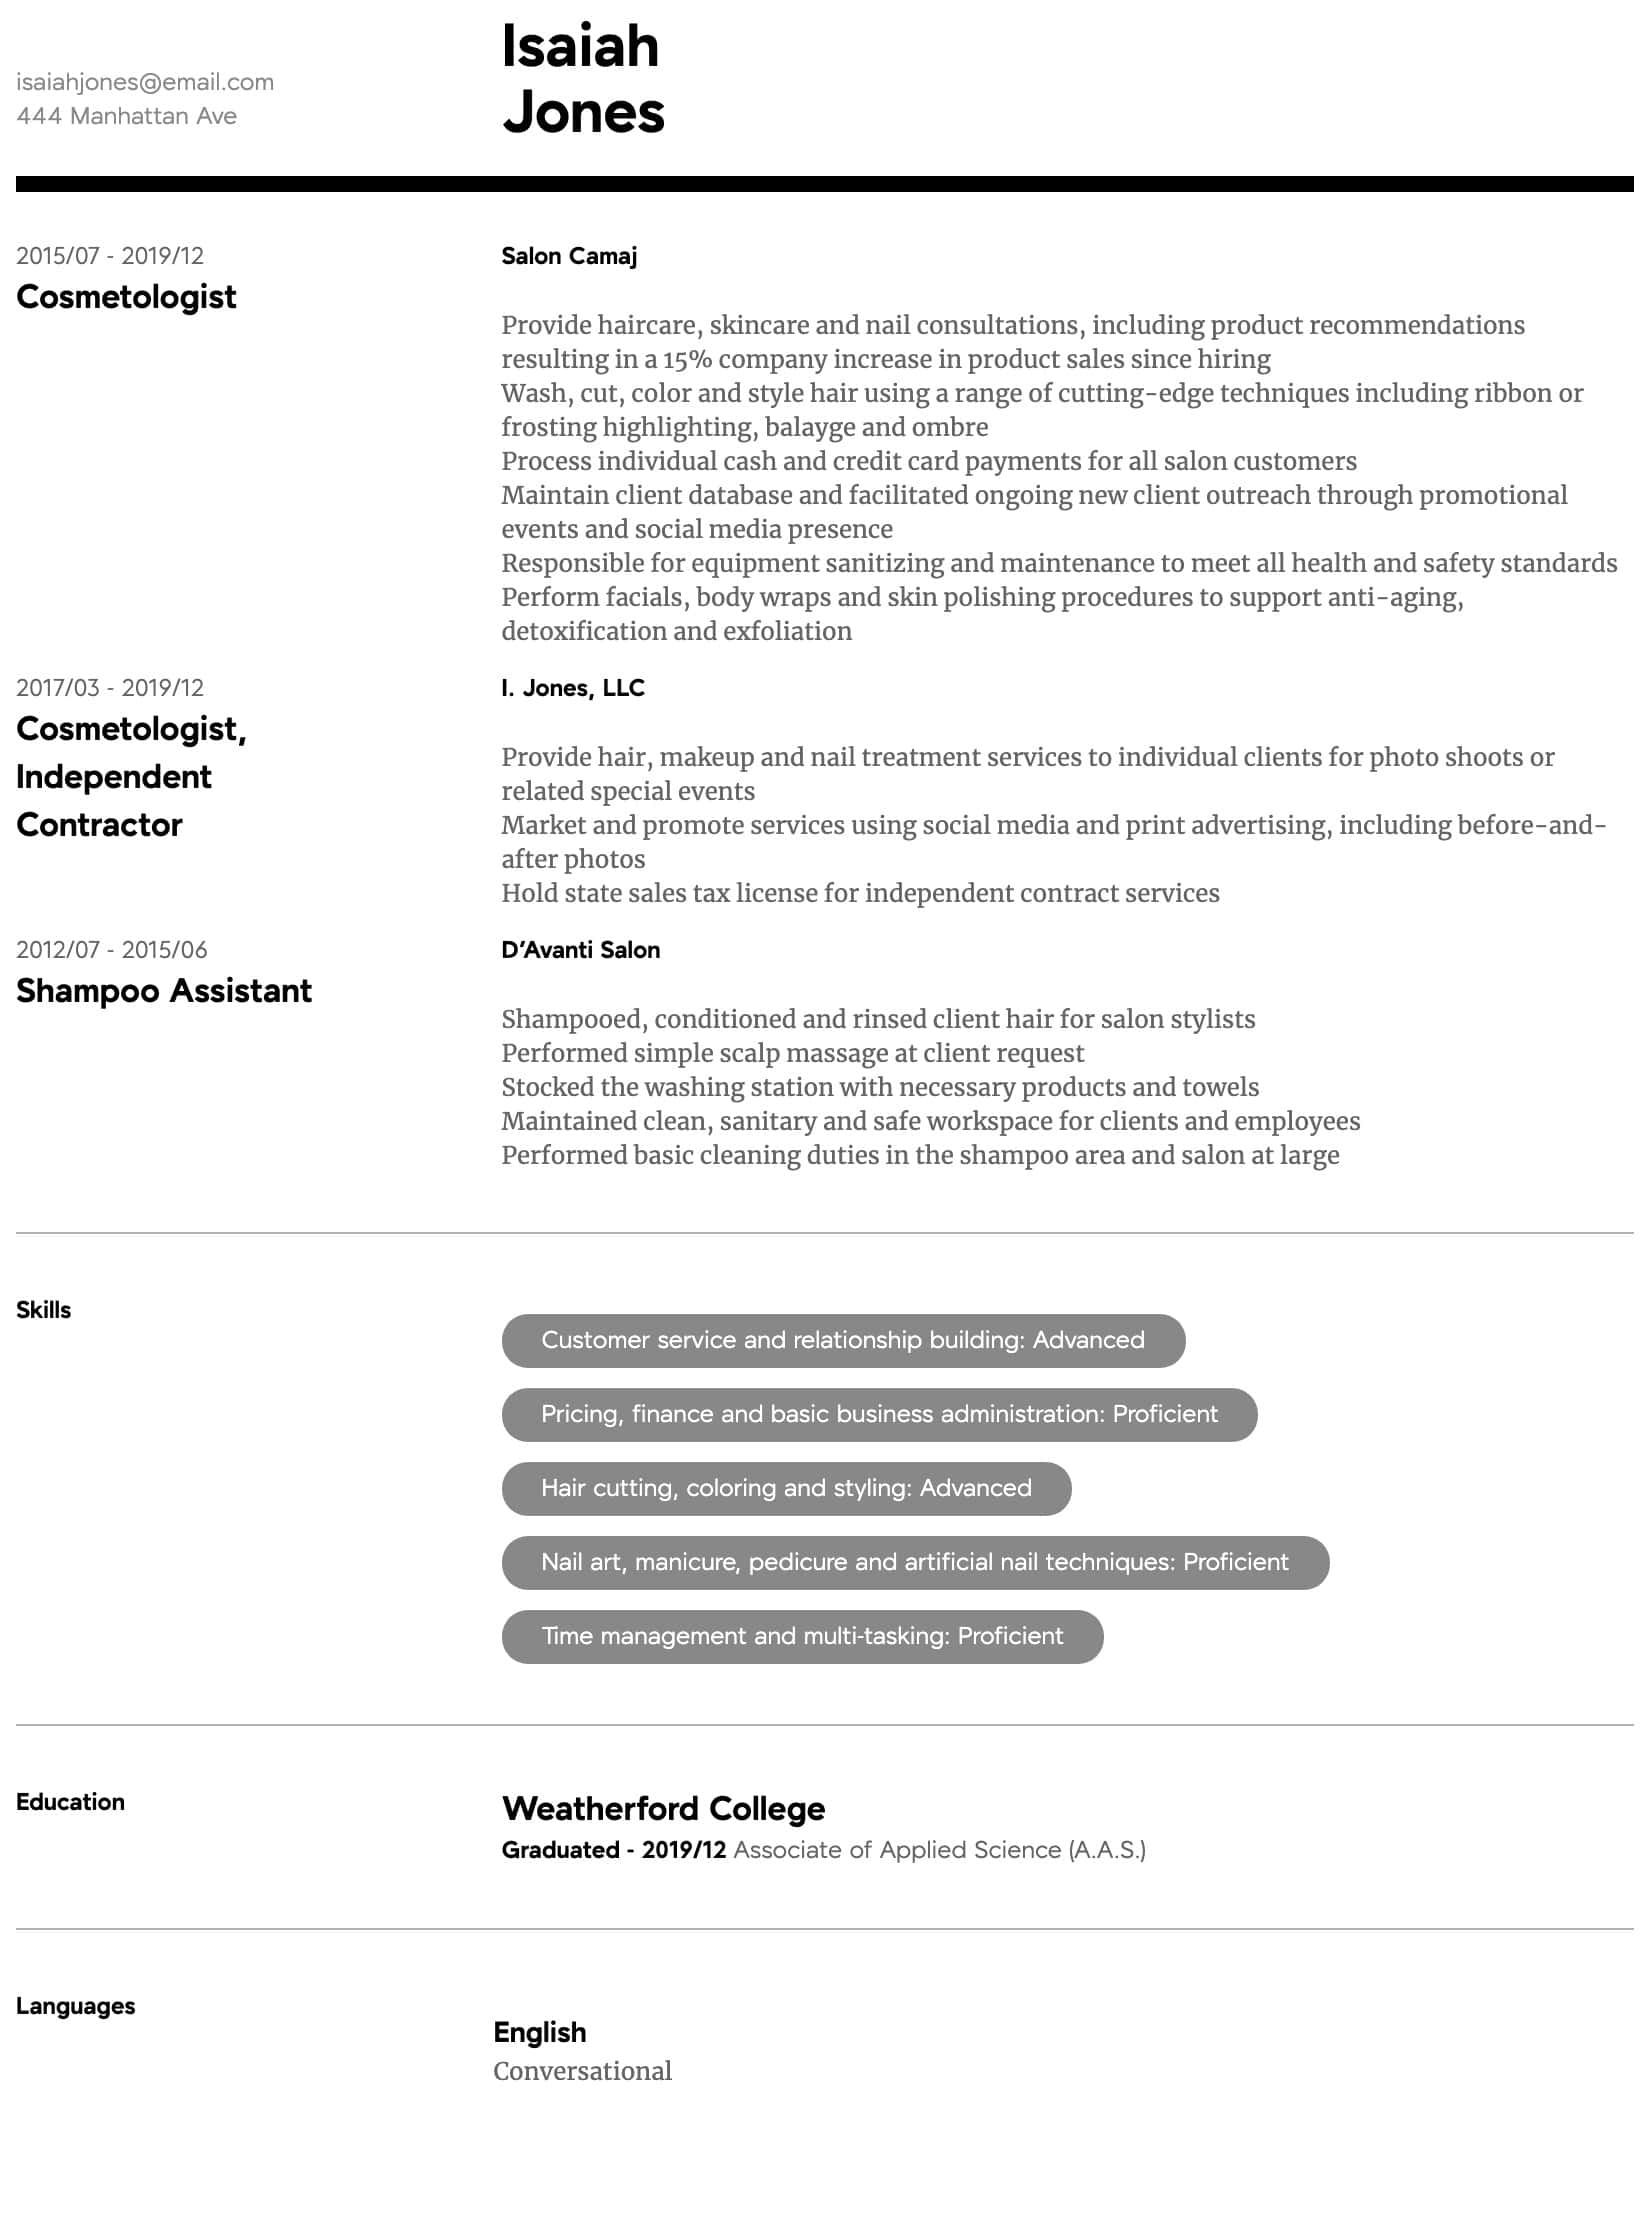 Cosmetology Resume Samples | All Experience Levels | Resume ...